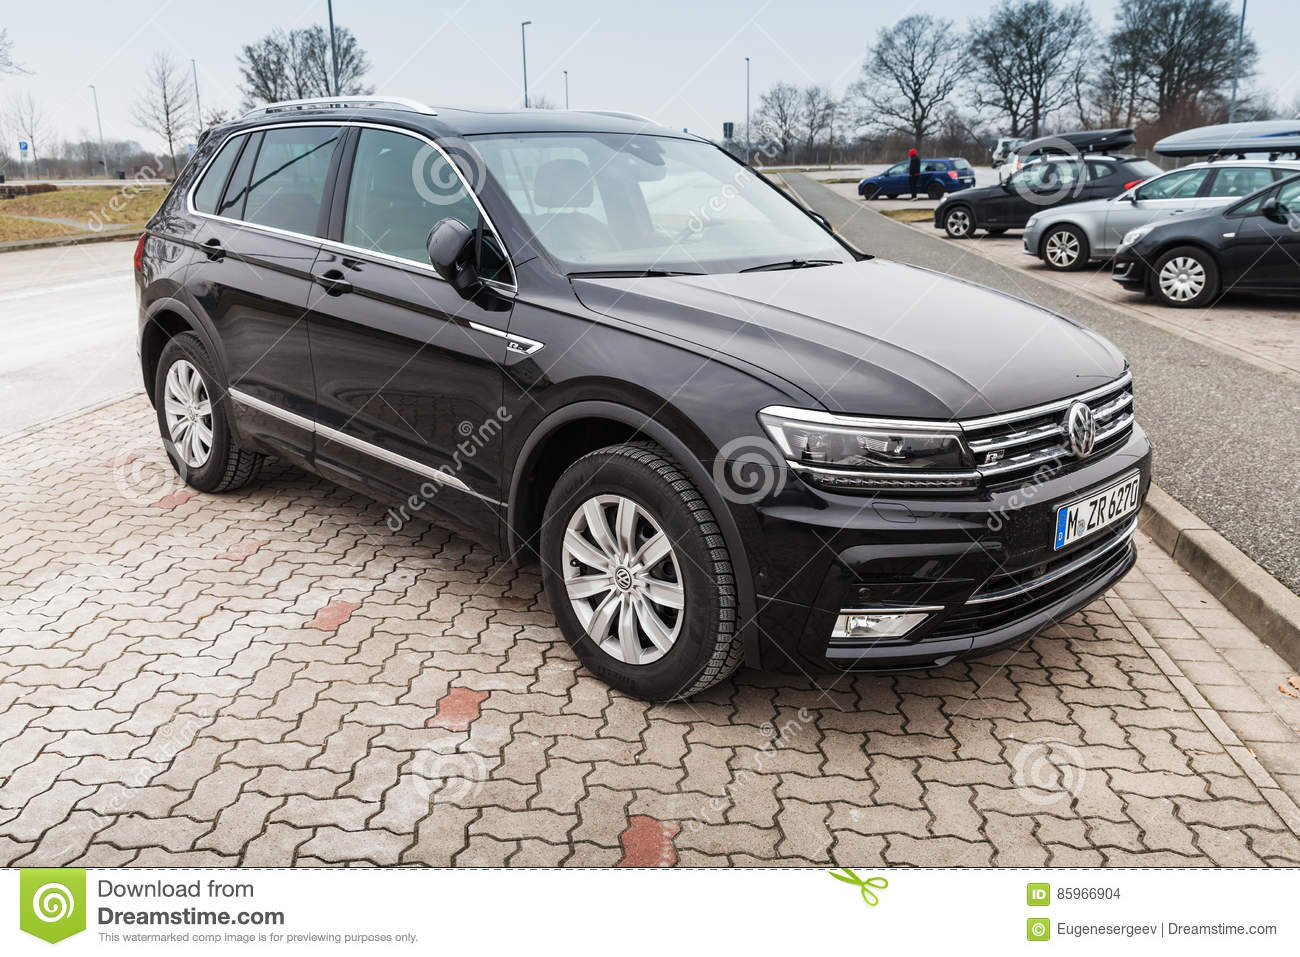 volkswagen tiguan 4x4 r line black editorial stock image. Black Bedroom Furniture Sets. Home Design Ideas